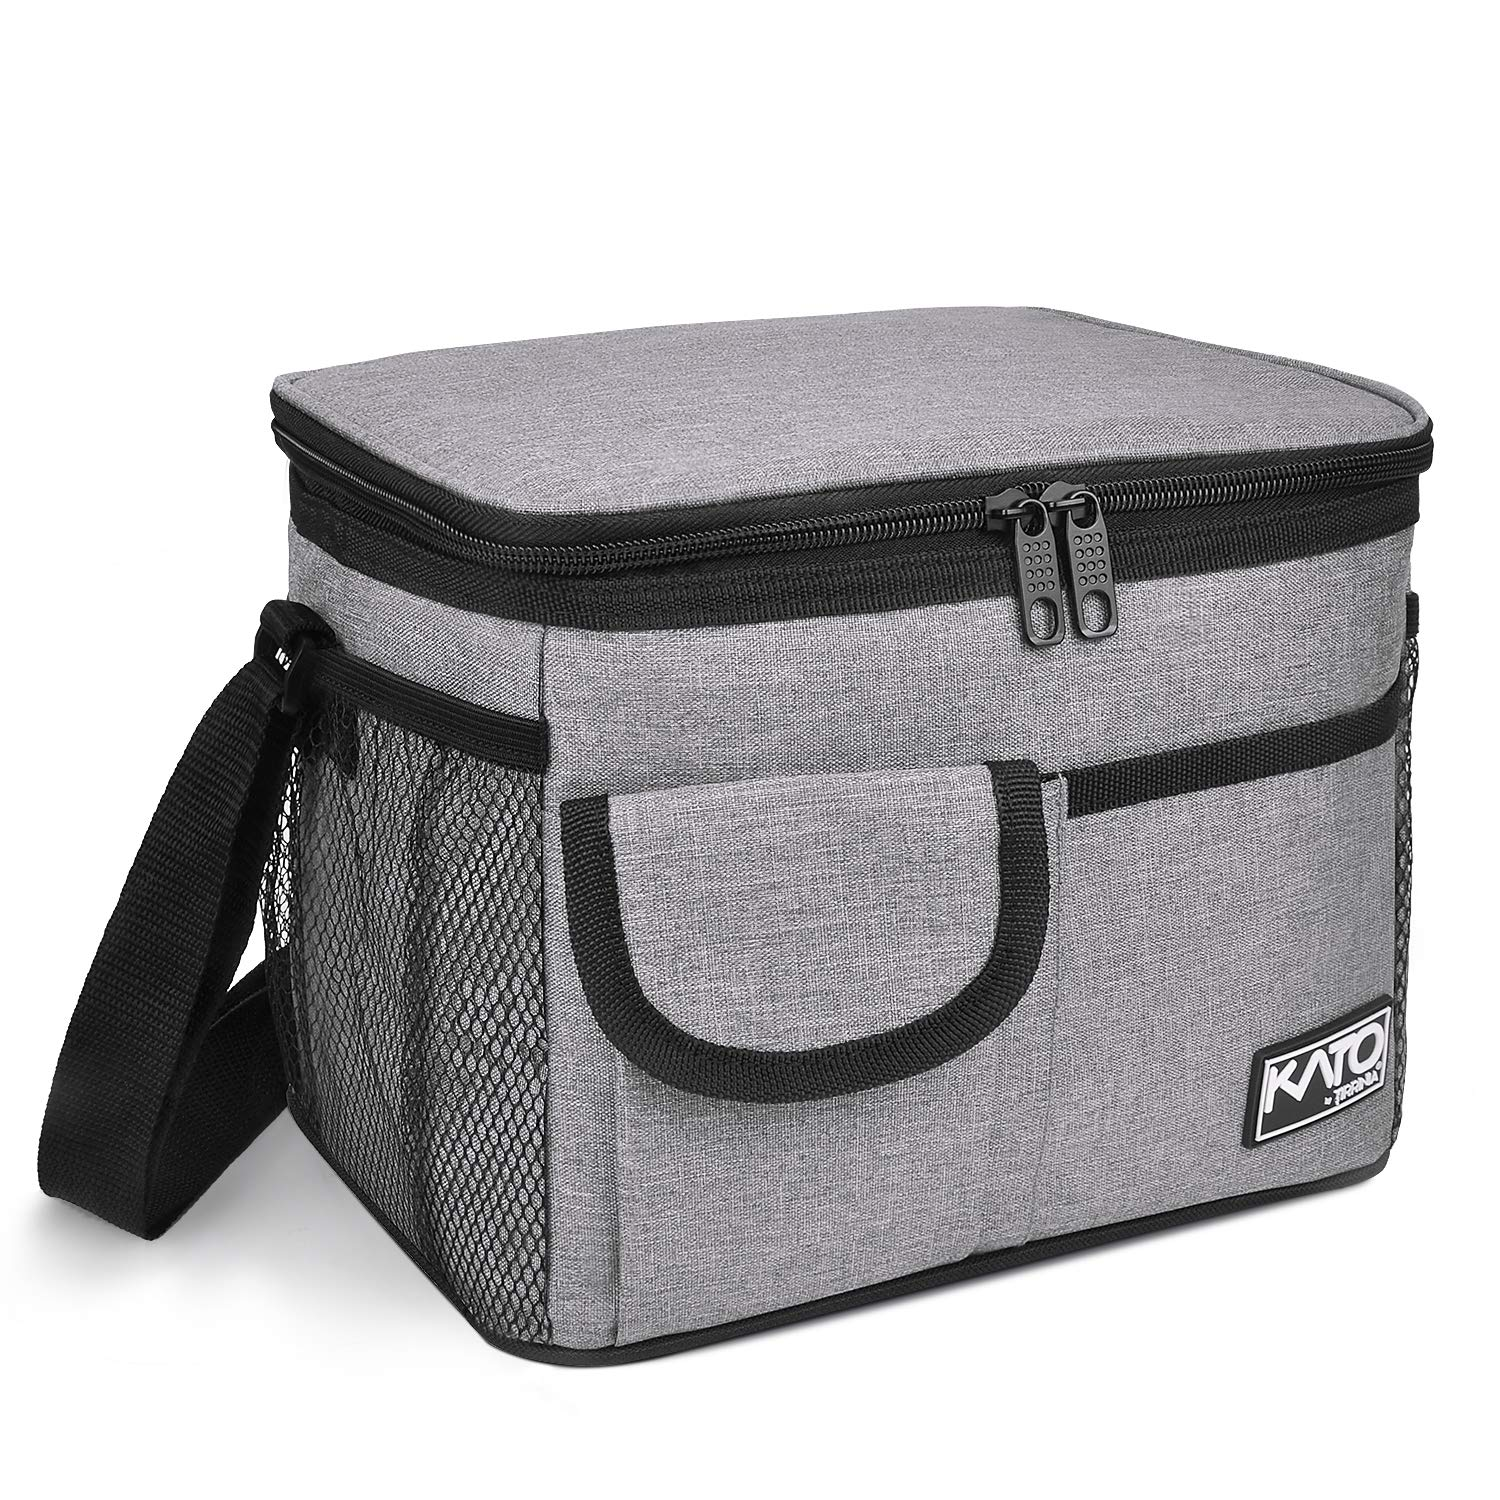 Insulated Lunch Box for Women Men, Leakproof Thermal Reusable Lunch Bag with 4 Pockets for Adult & Kids, Lunch Bag Cooler Tote for Office Work by Tirrinia, Gray